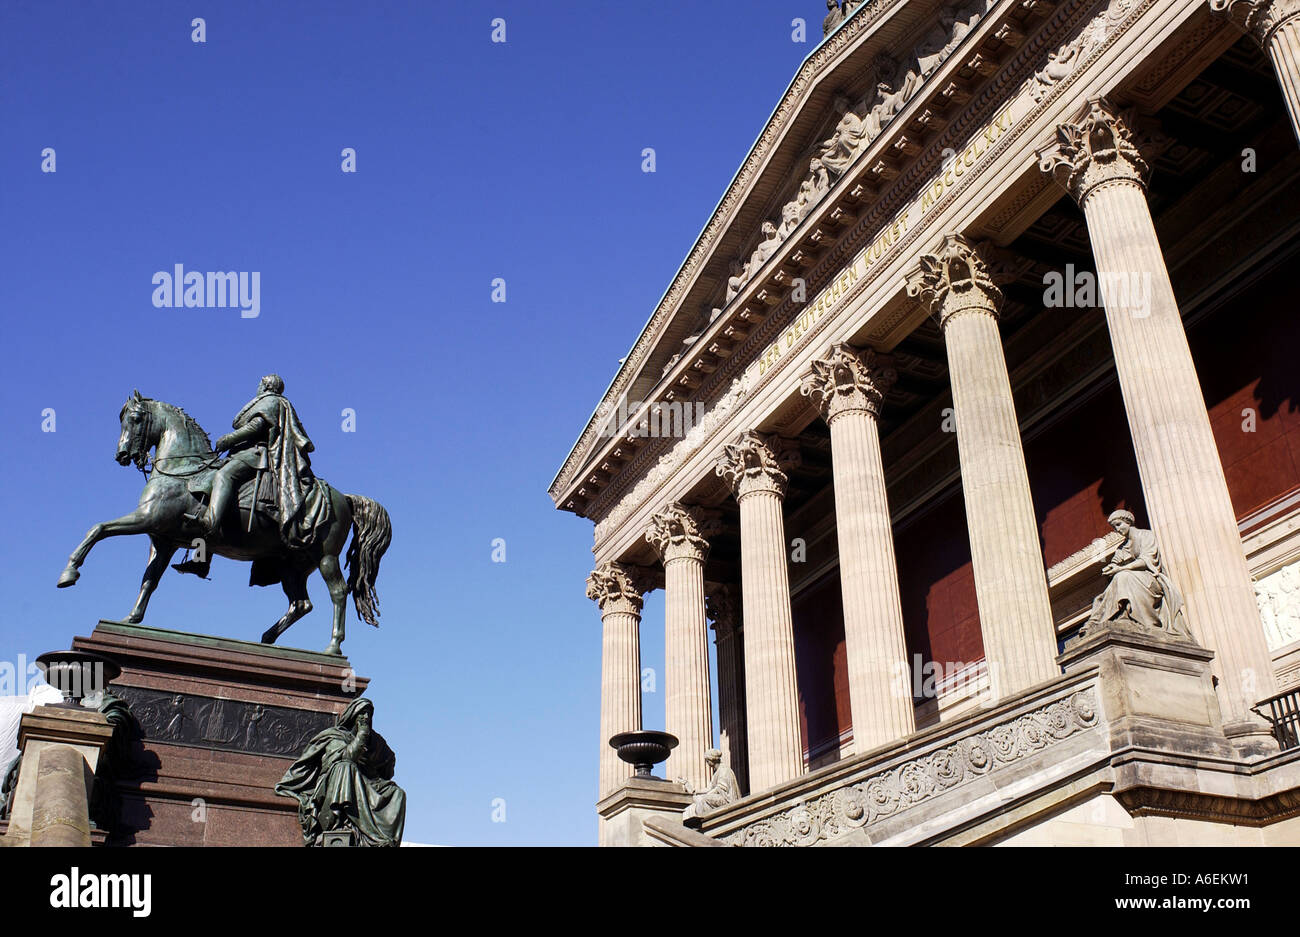 Old national gallery, museum on the museum island Stock Photo